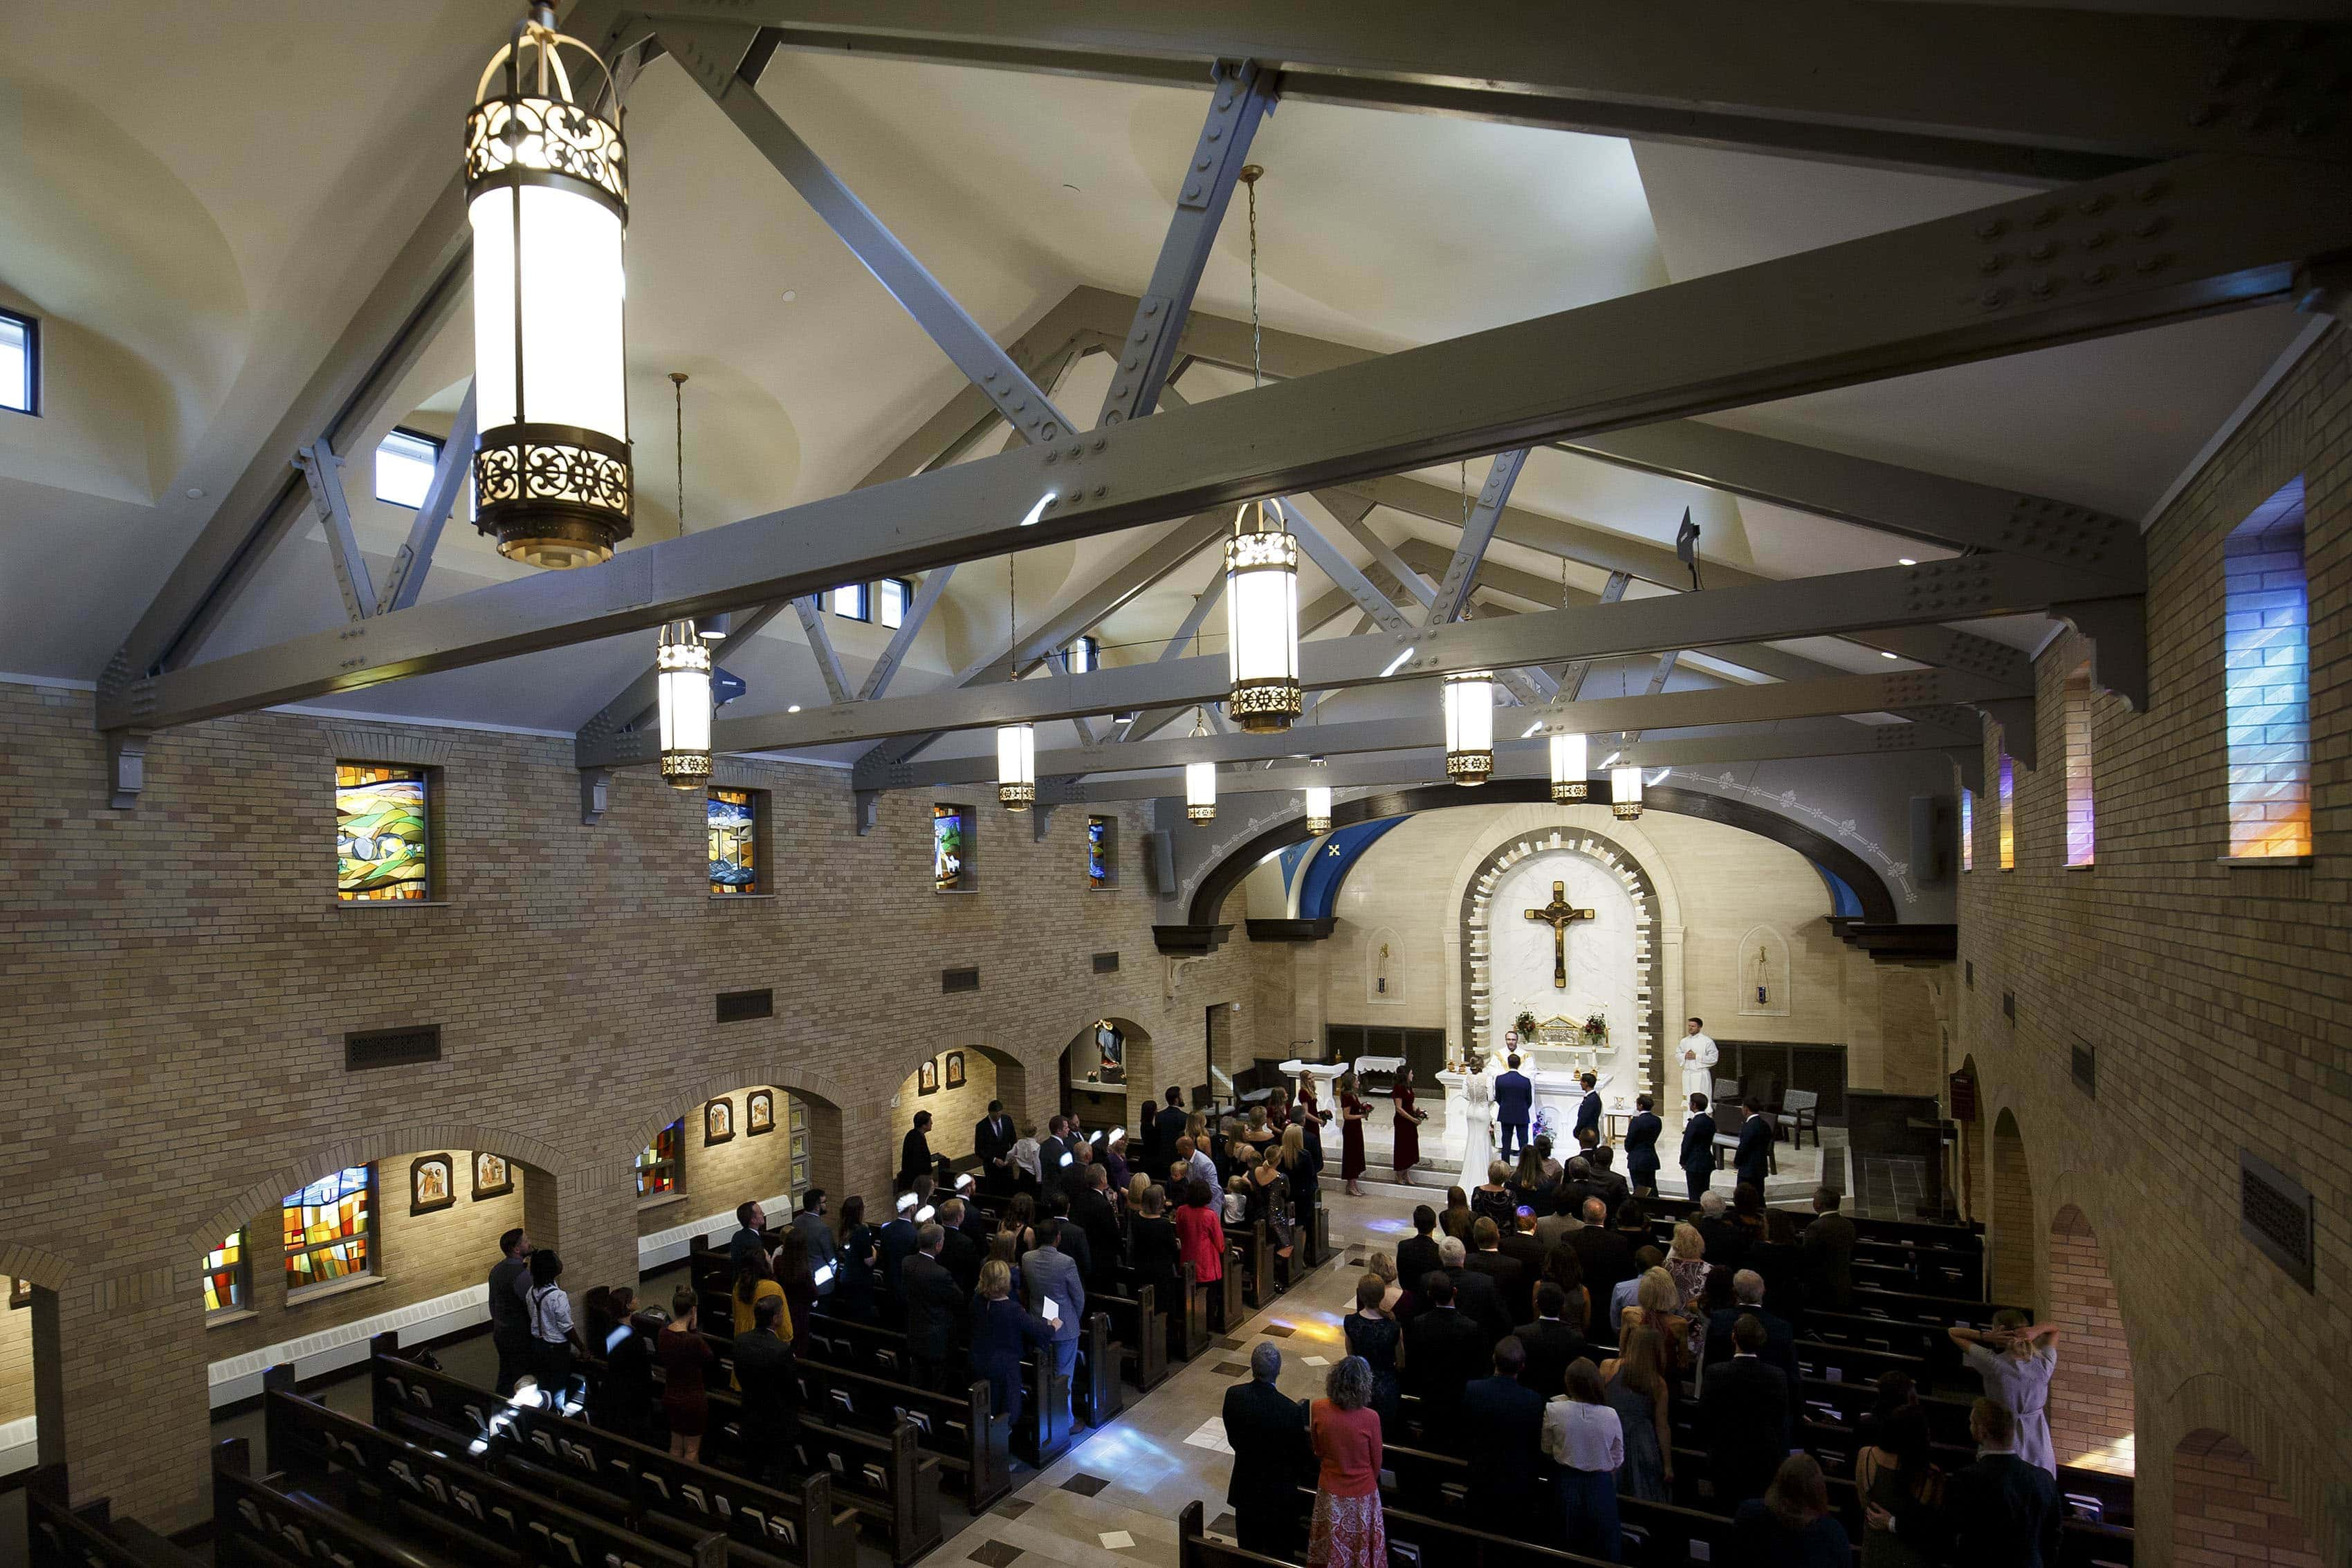 A wedding ceremony inside the newly remodeled Our Lady of Lourdes Catholic Church in Denver